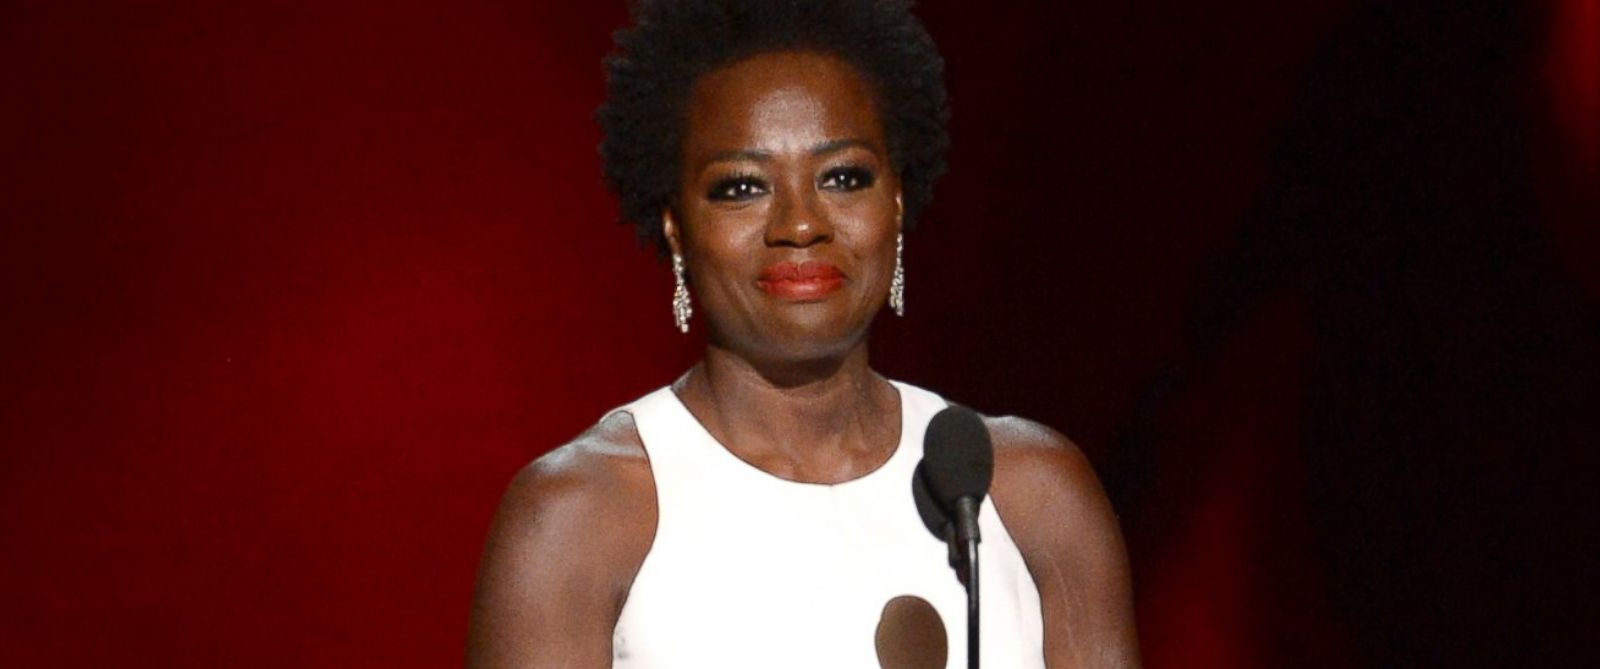 PHOTO: Viola Davis at the 67th Primetime Emmy Awards, Sept. 20, 2015, at the Microsoft Theater in Los Angeles.